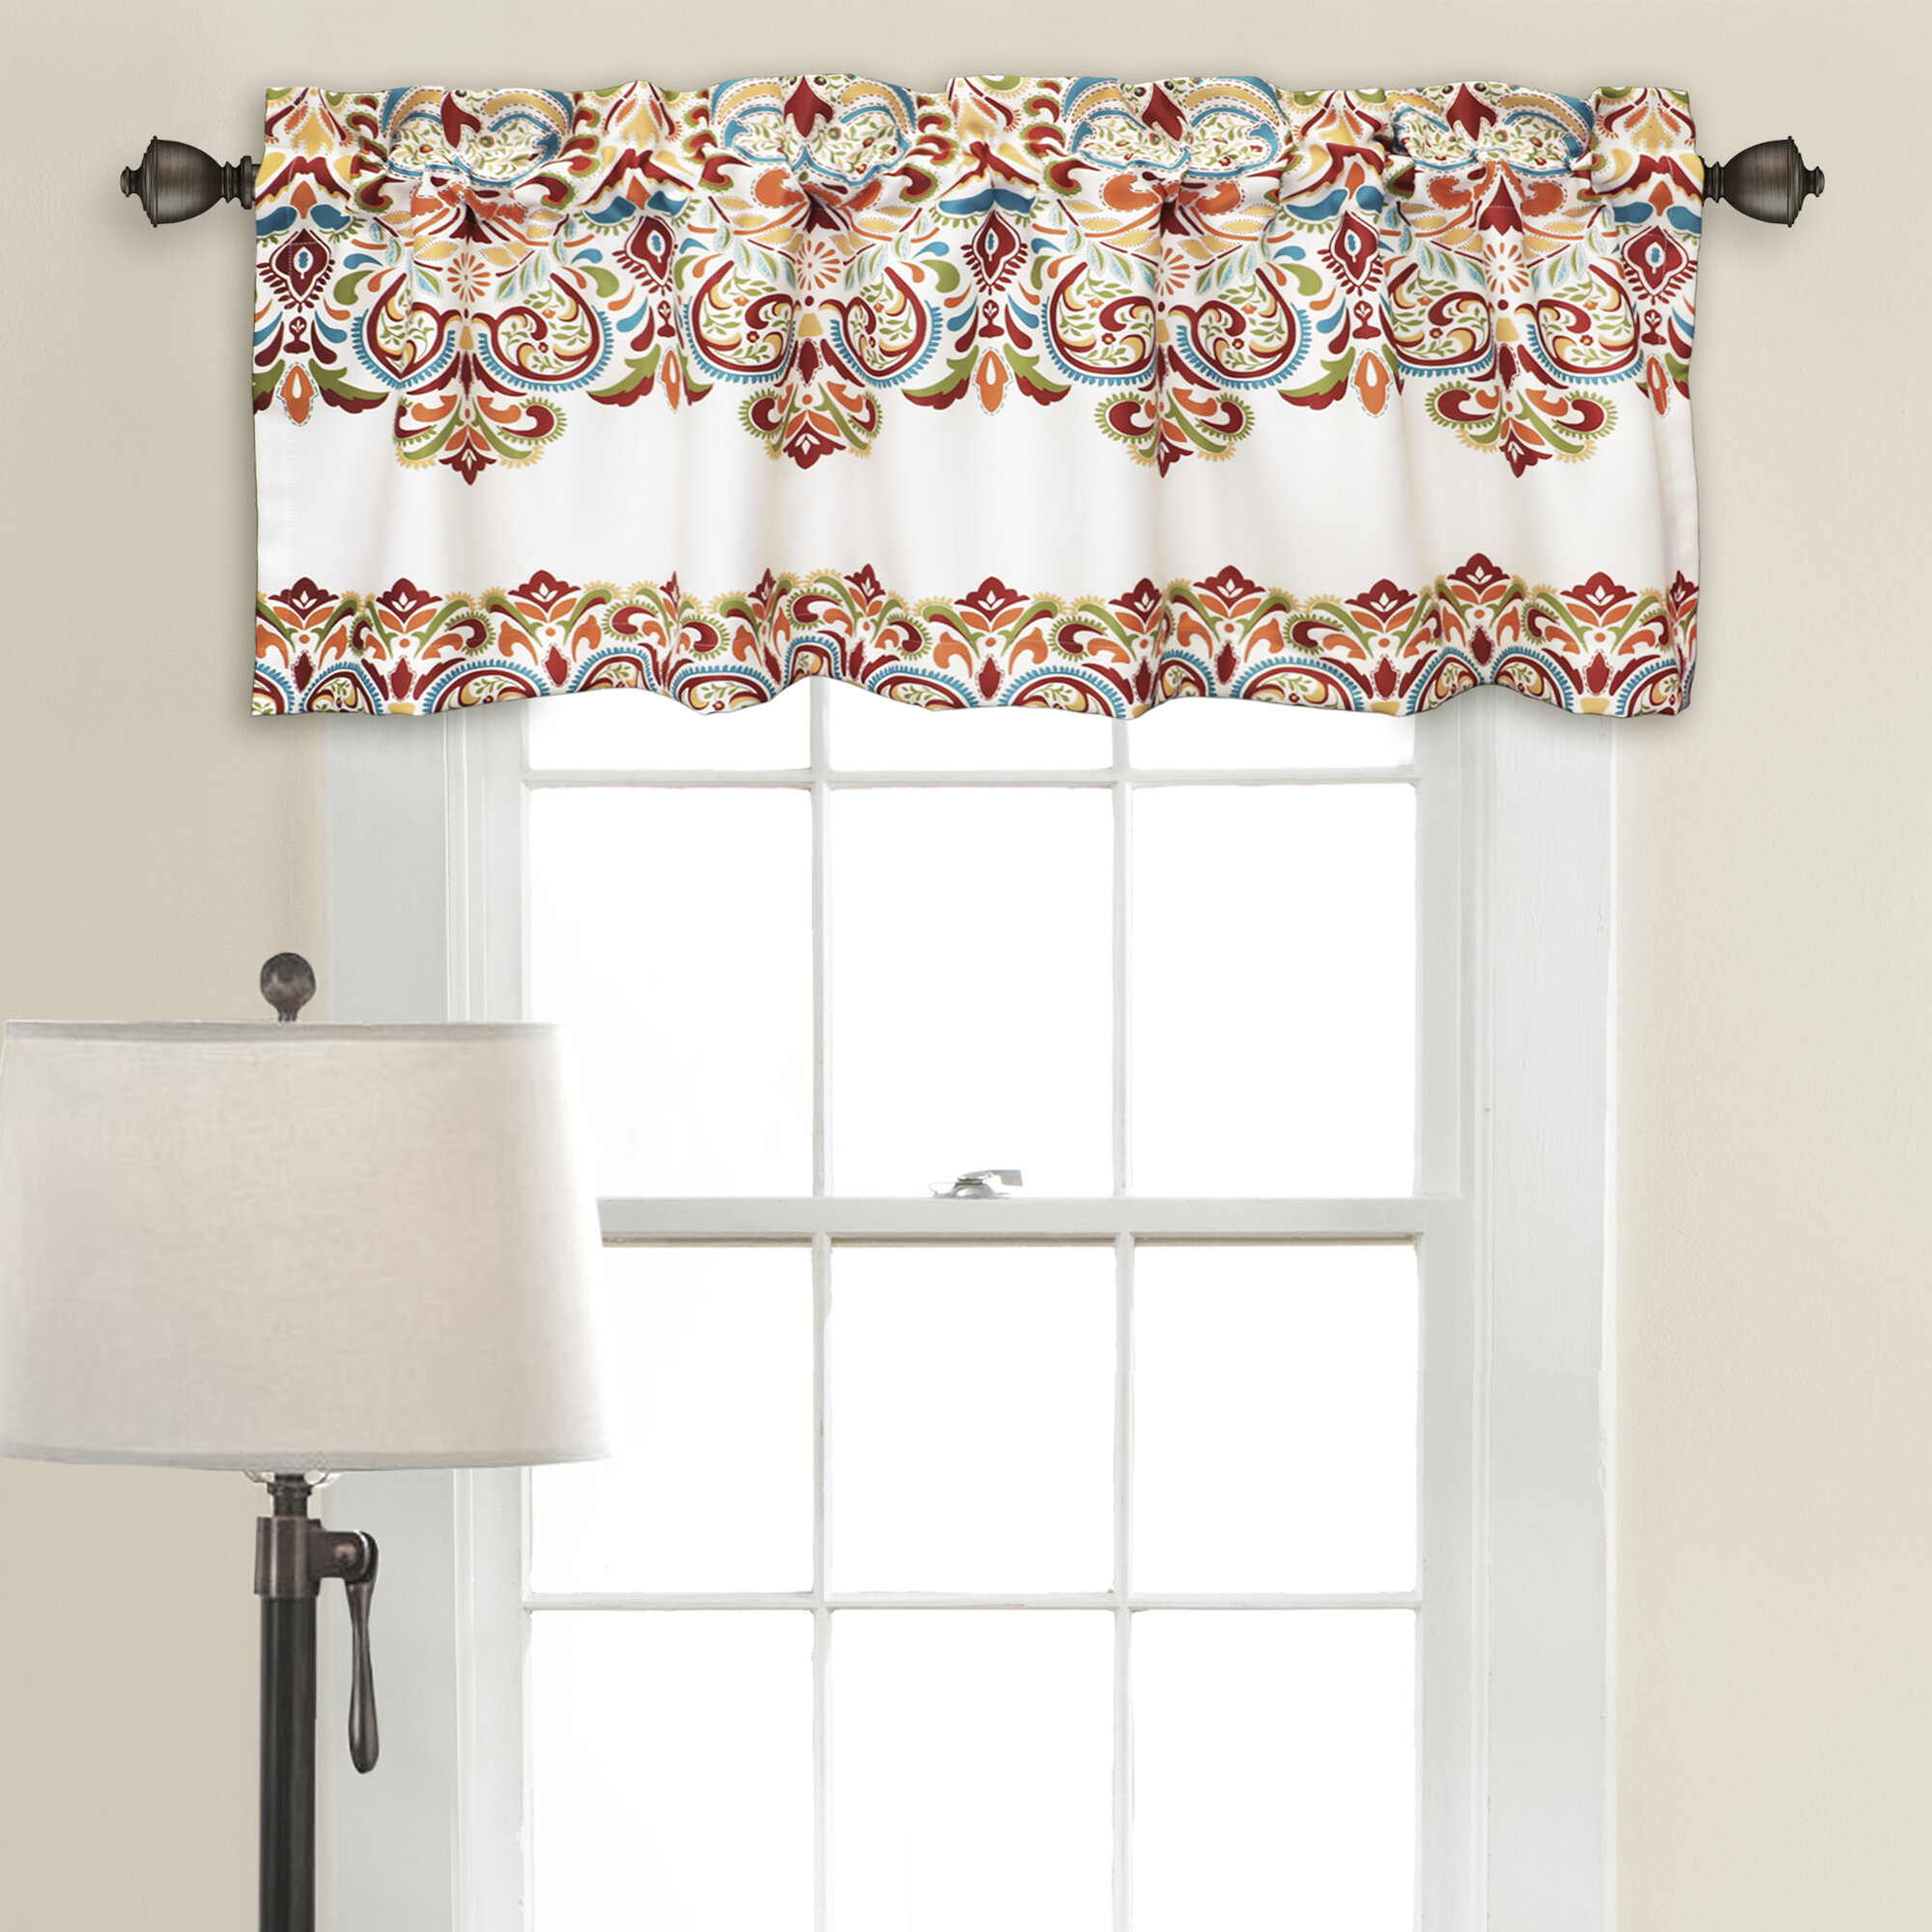 valances waverly treatments for valance life windows key pdx window wayfair of